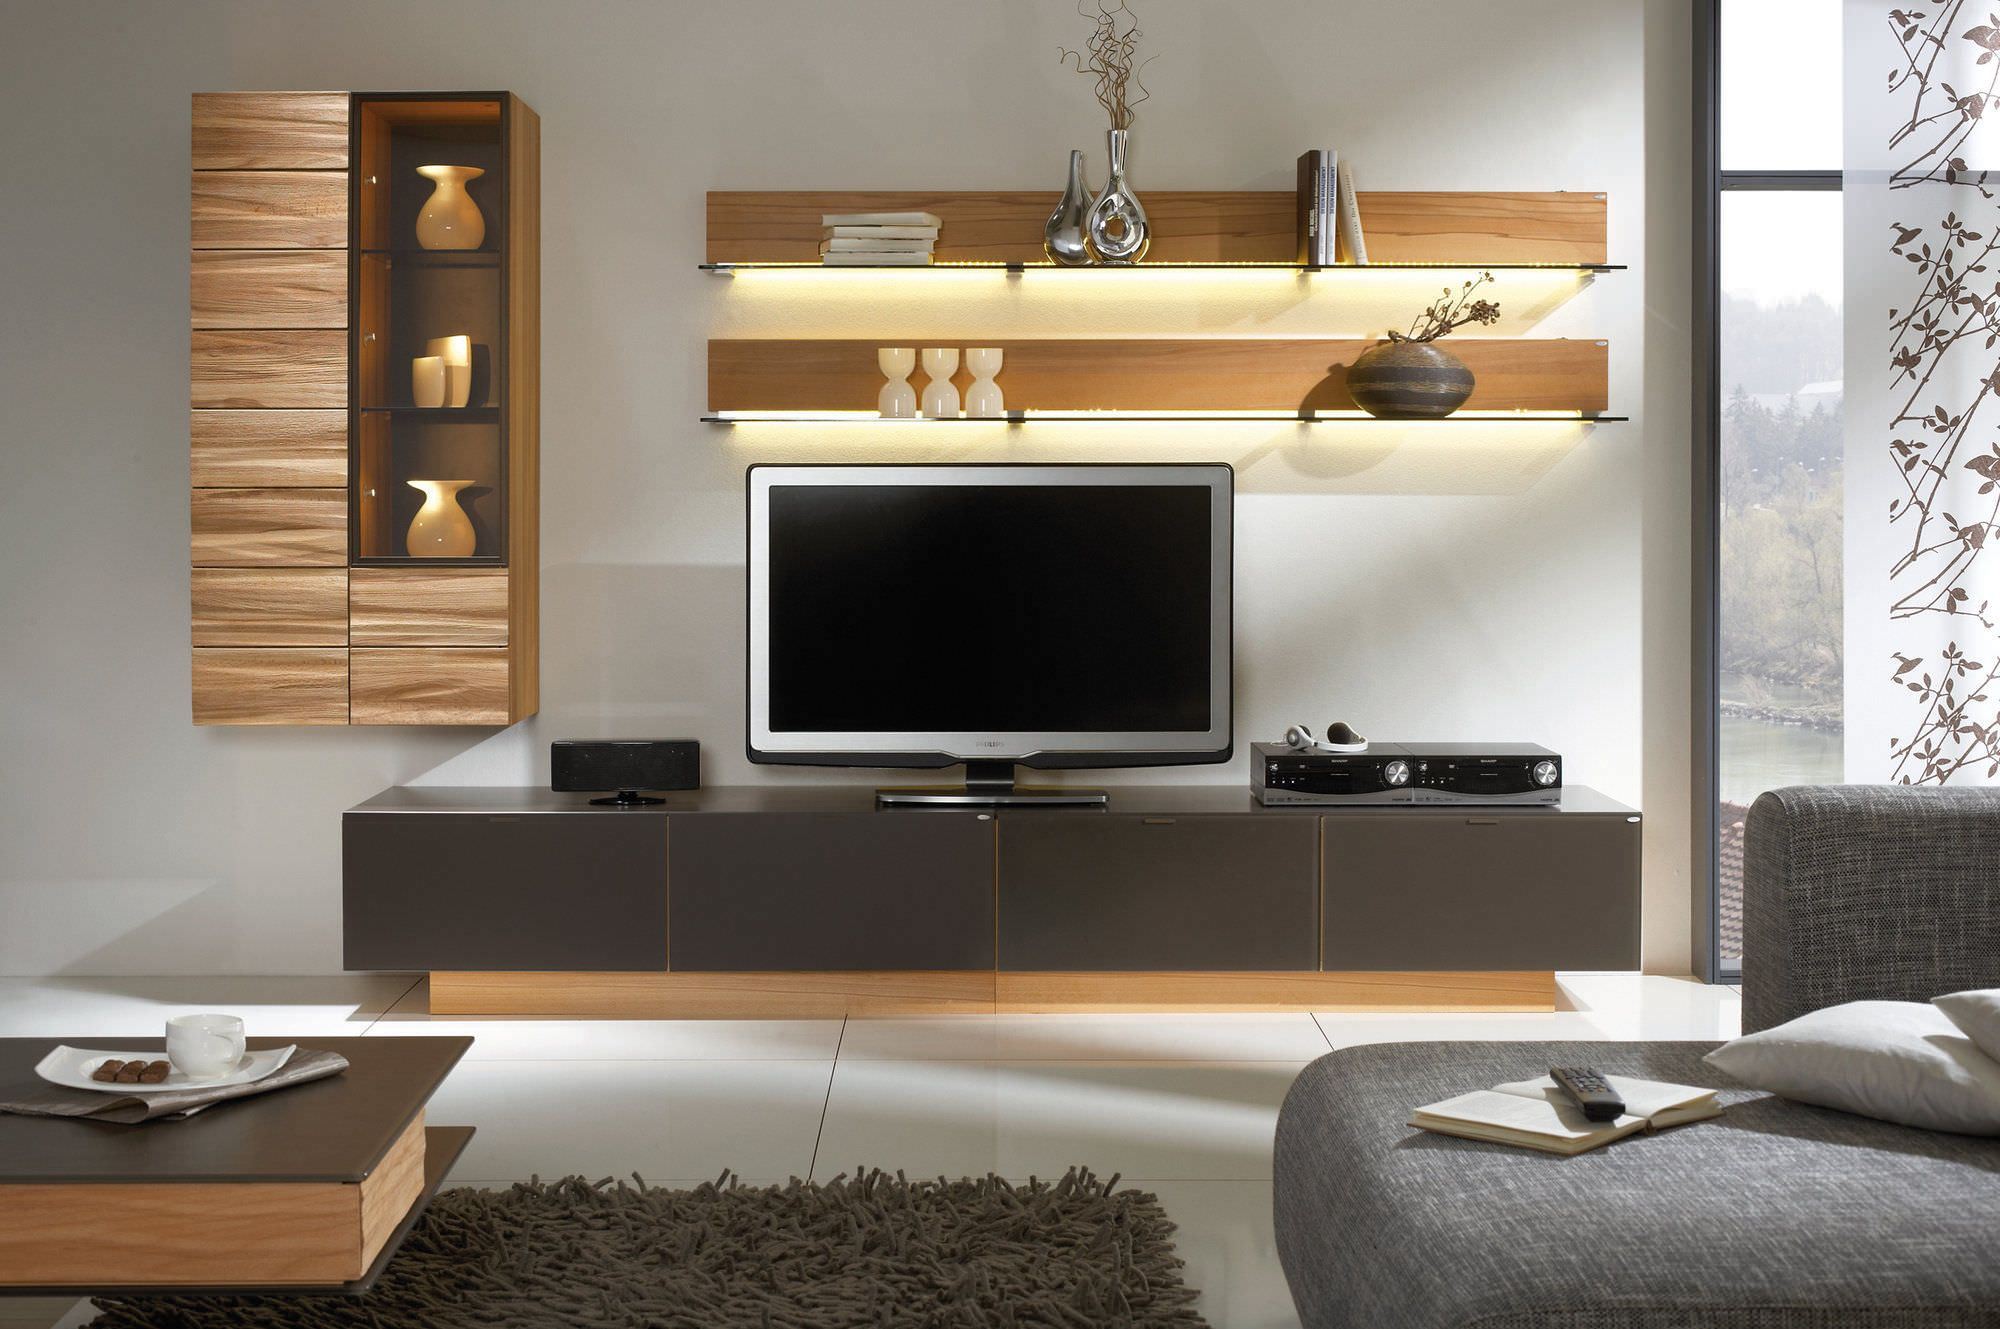 Awesome white brown wood glass cool design contemporary tv Modern tv unit design ideas